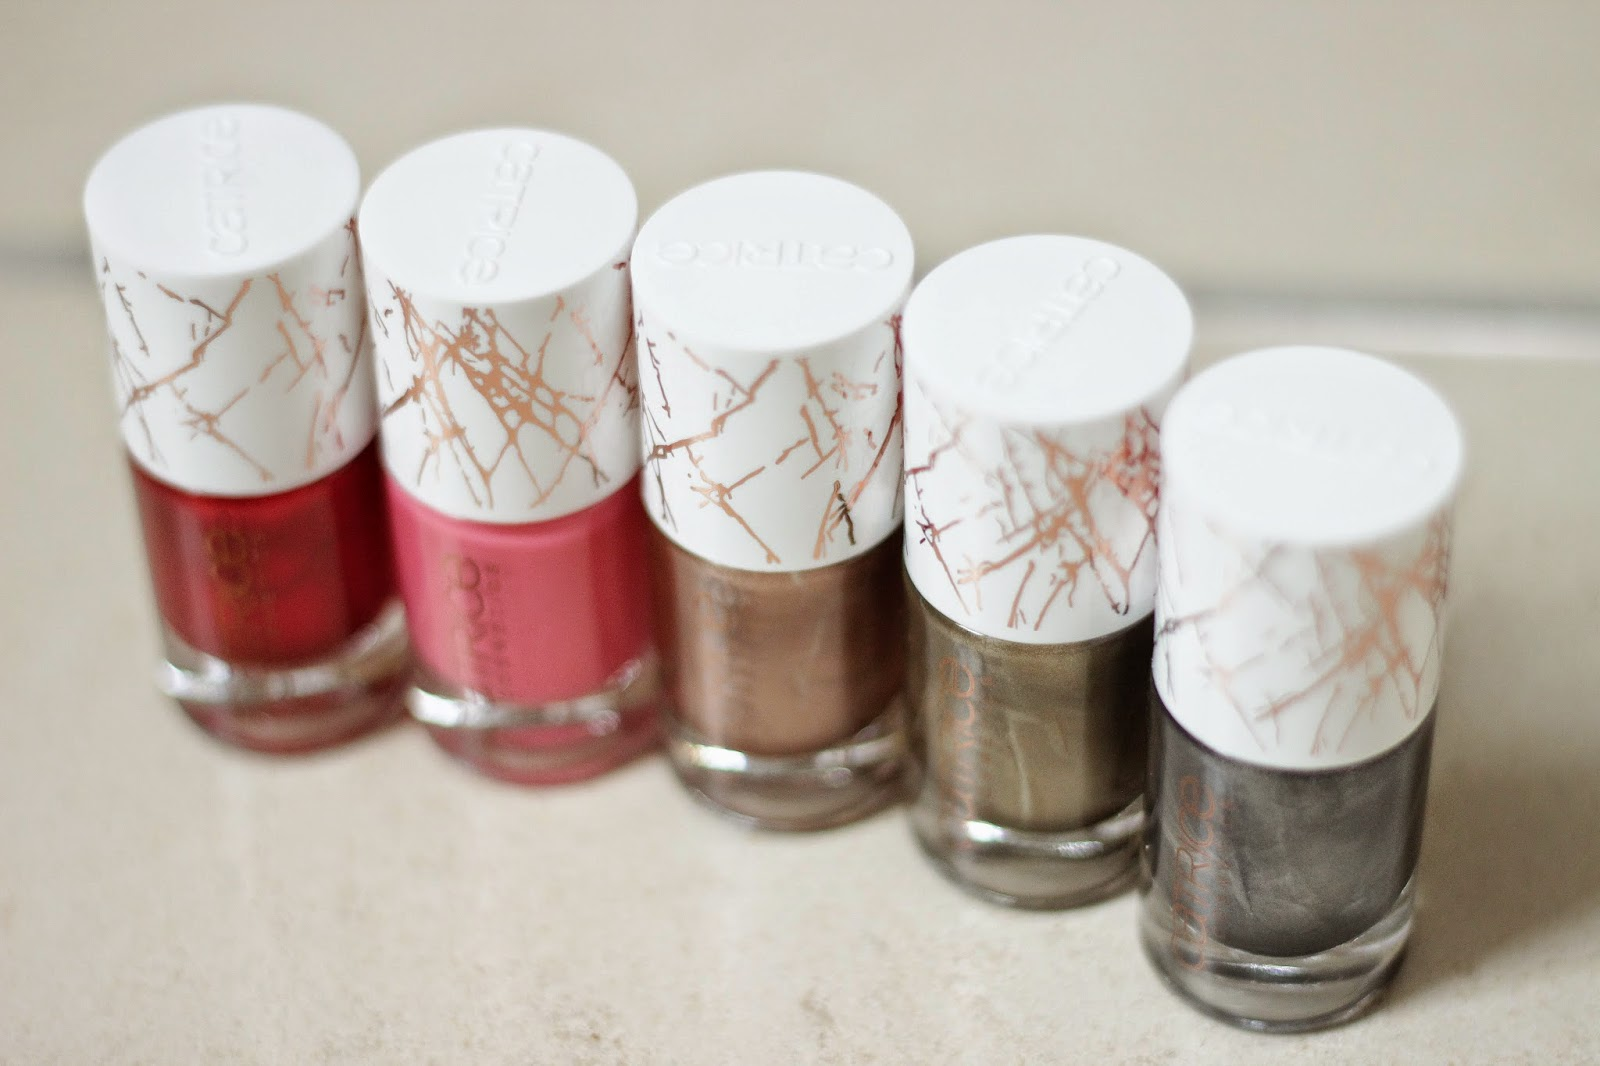 catrice metallure review, catrice metallure nagellakjes swatches